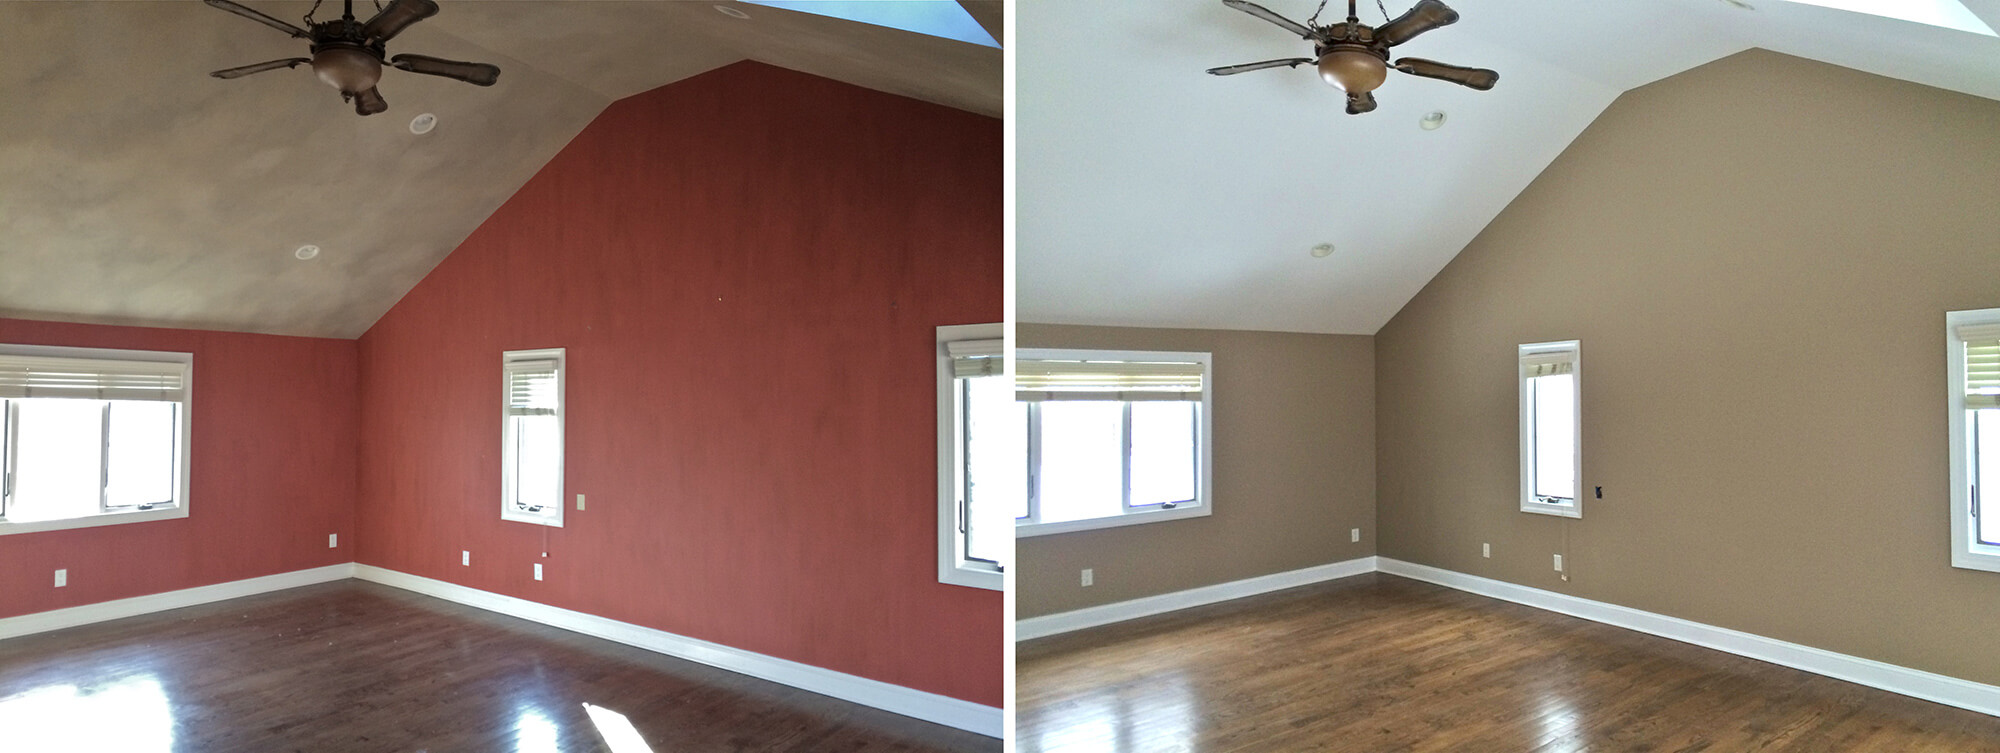 Interior Painting Images: Ridge Painting Company